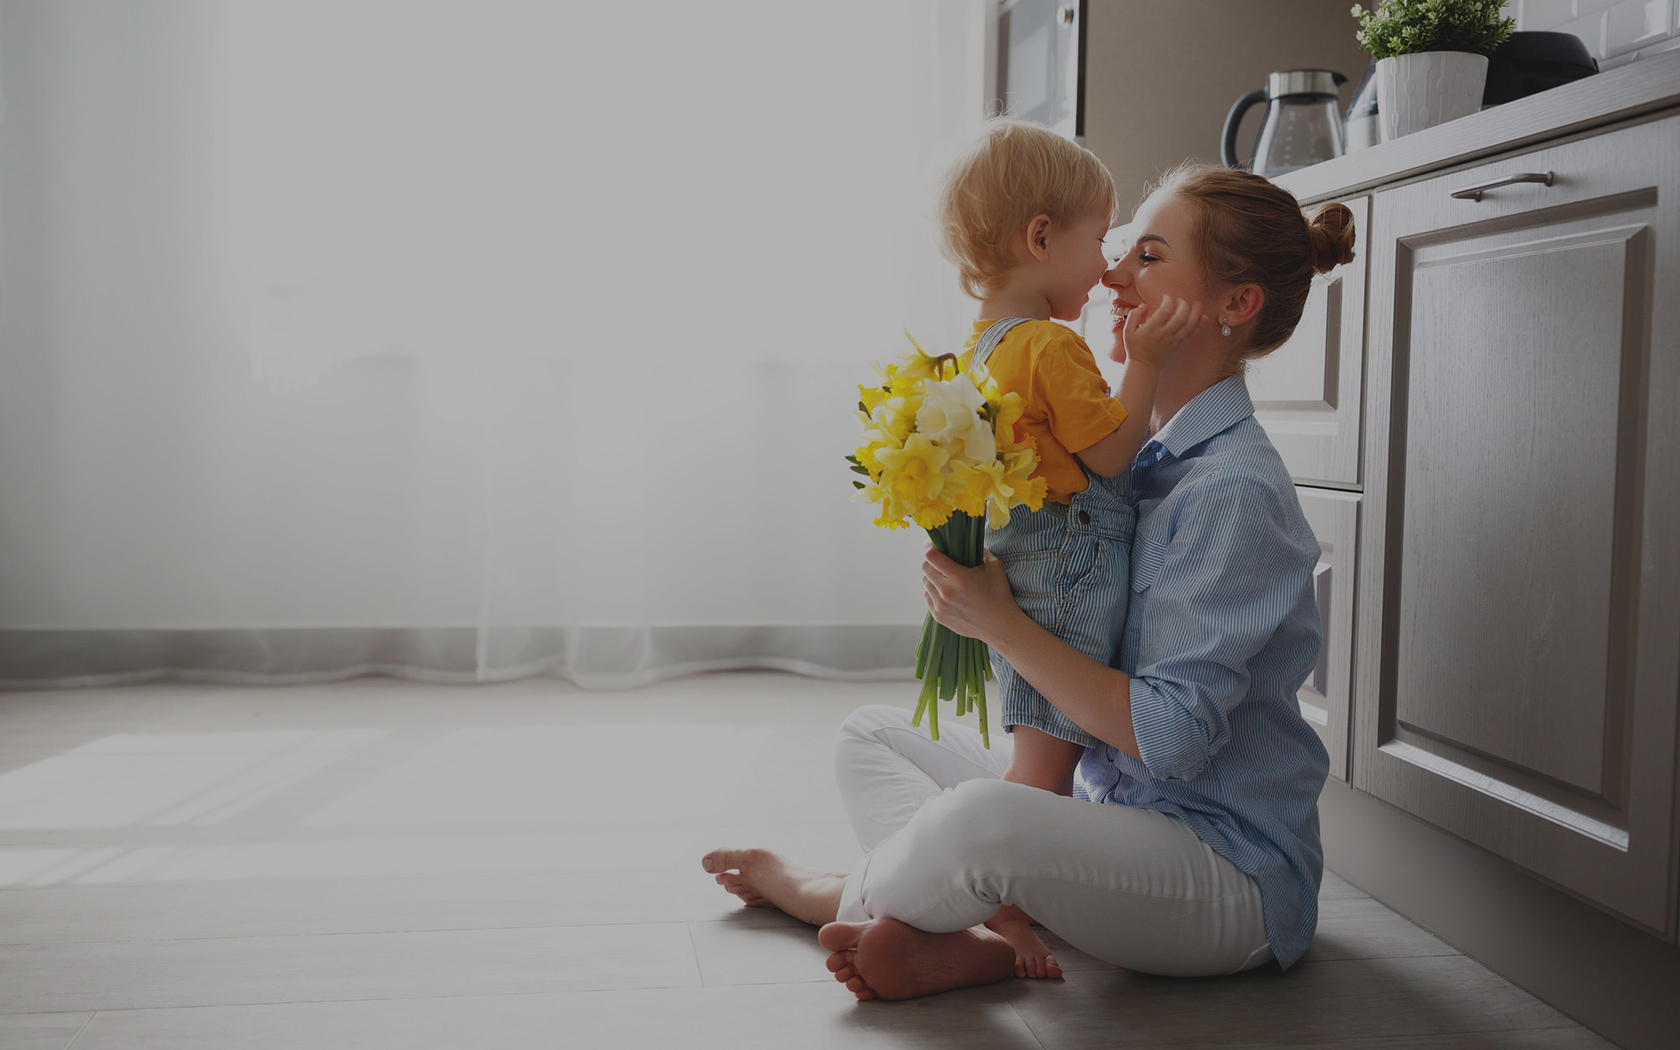 Woman and child embracing sitting on the floor